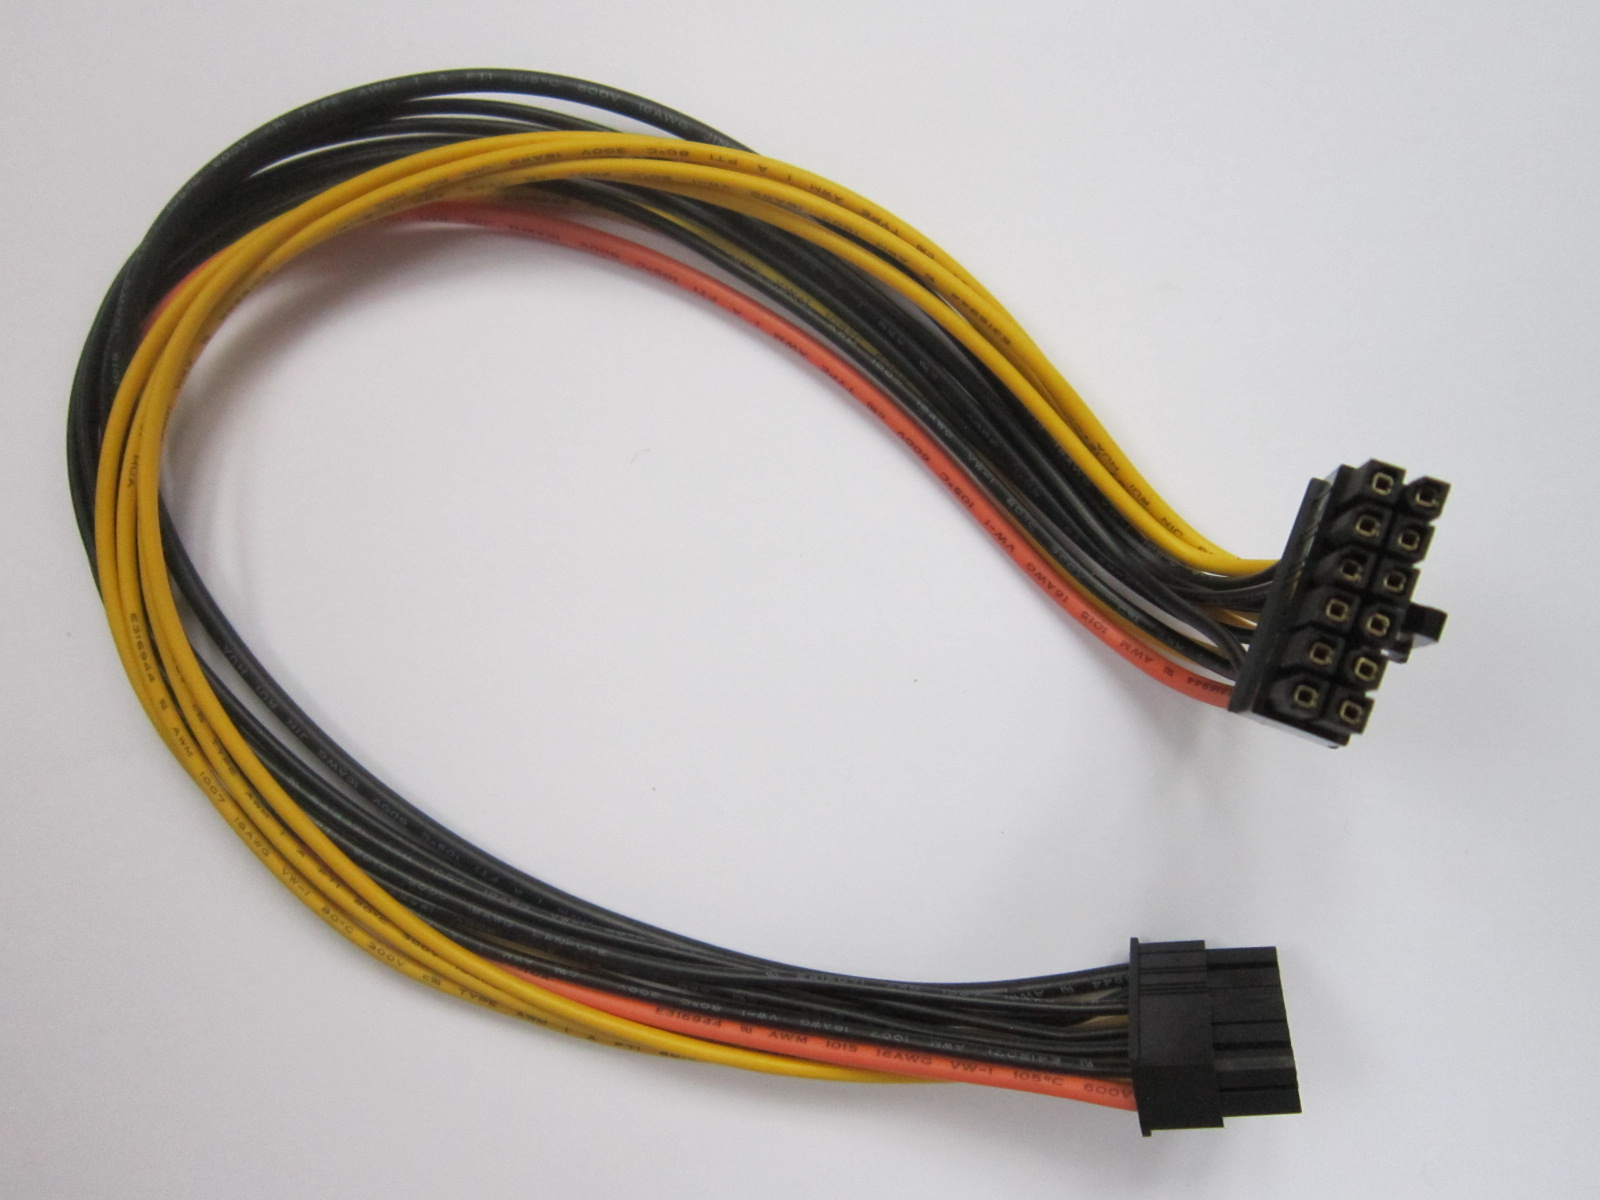 Avalon-modular-power-cable.JPG